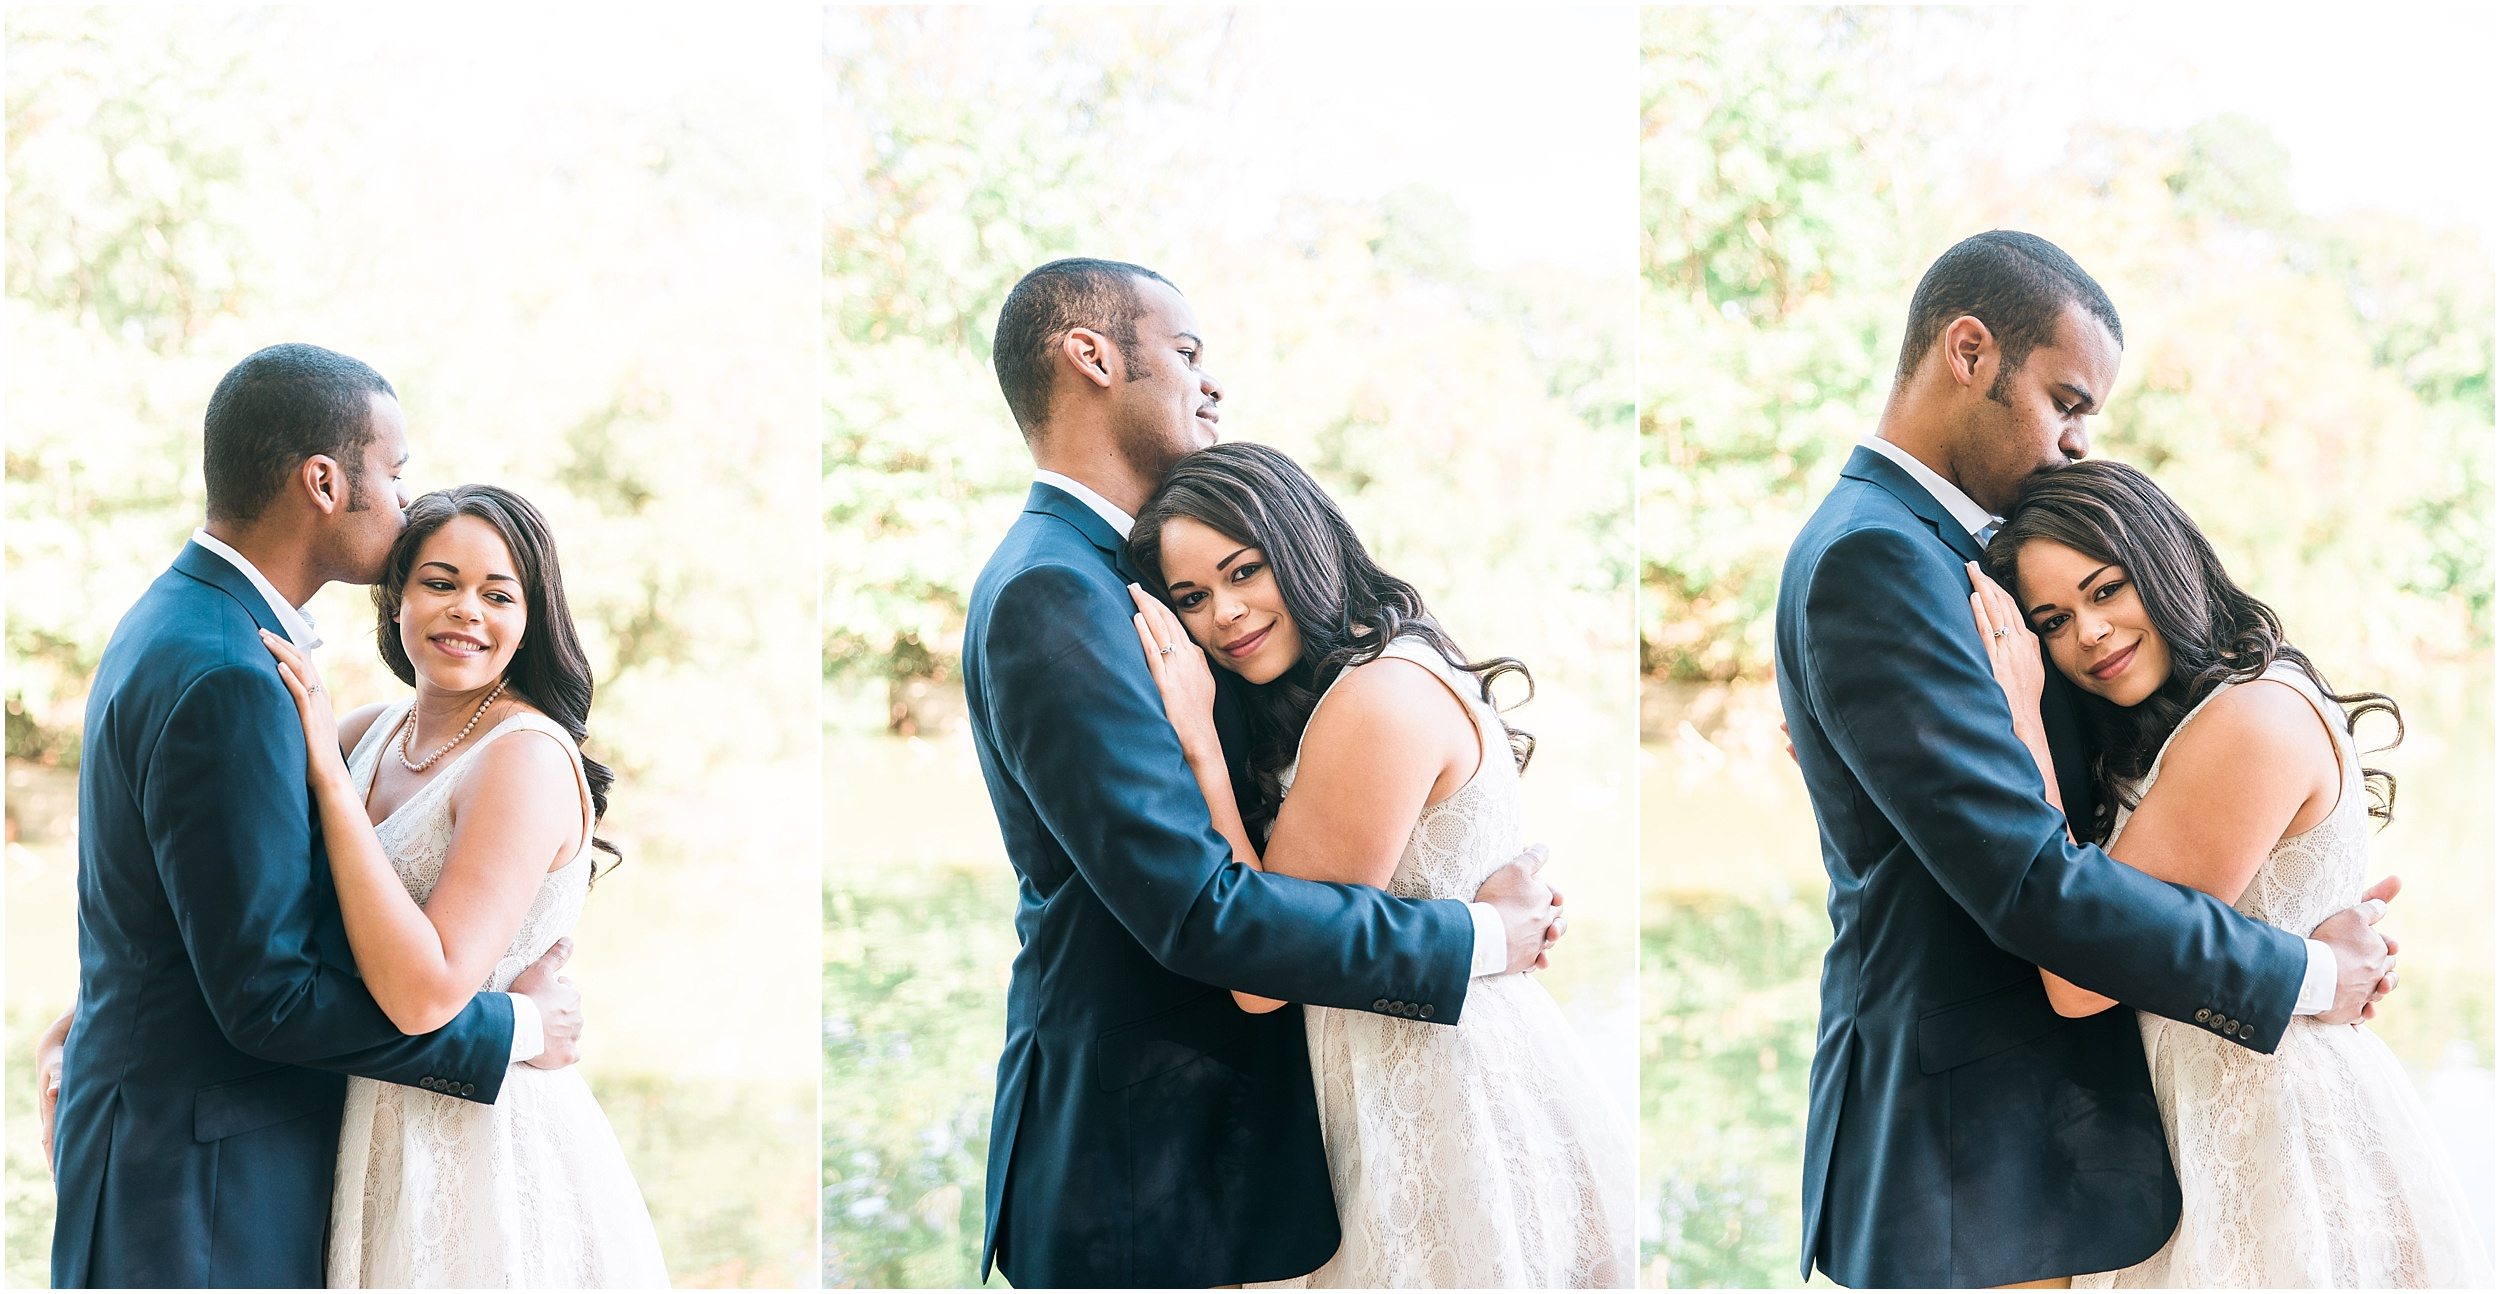 Tallahassee Florida Wedding, Matt and Lindsey Engagement Session at Piedmont Park, Atlanta Georgia_0004.jpg